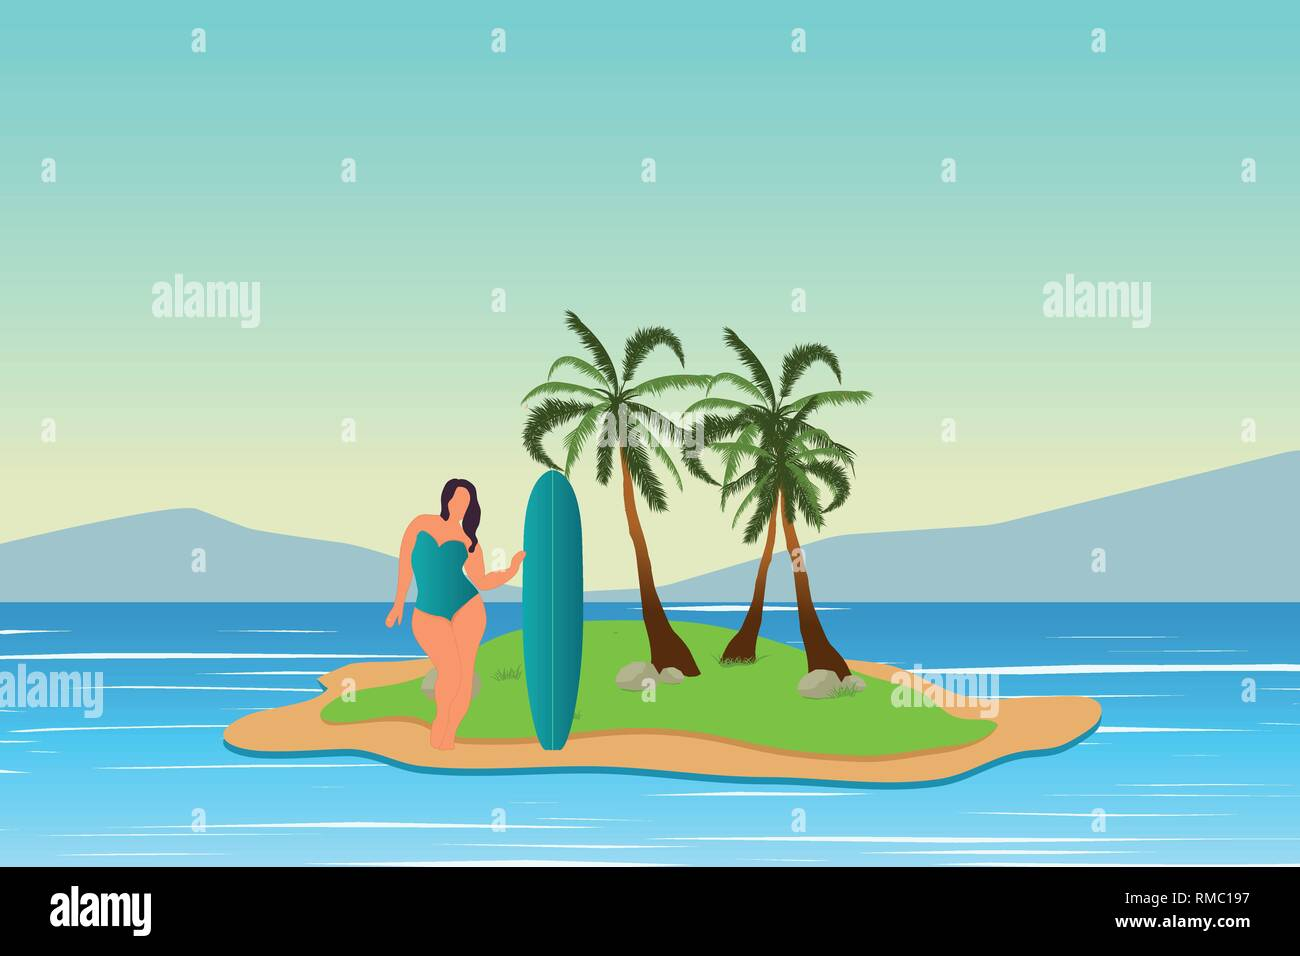 Tropical landscape. Sea landscape. Summer background. Girl with surfing board. Flat style illustration. Palm trees. Vector illustration - Stock Image